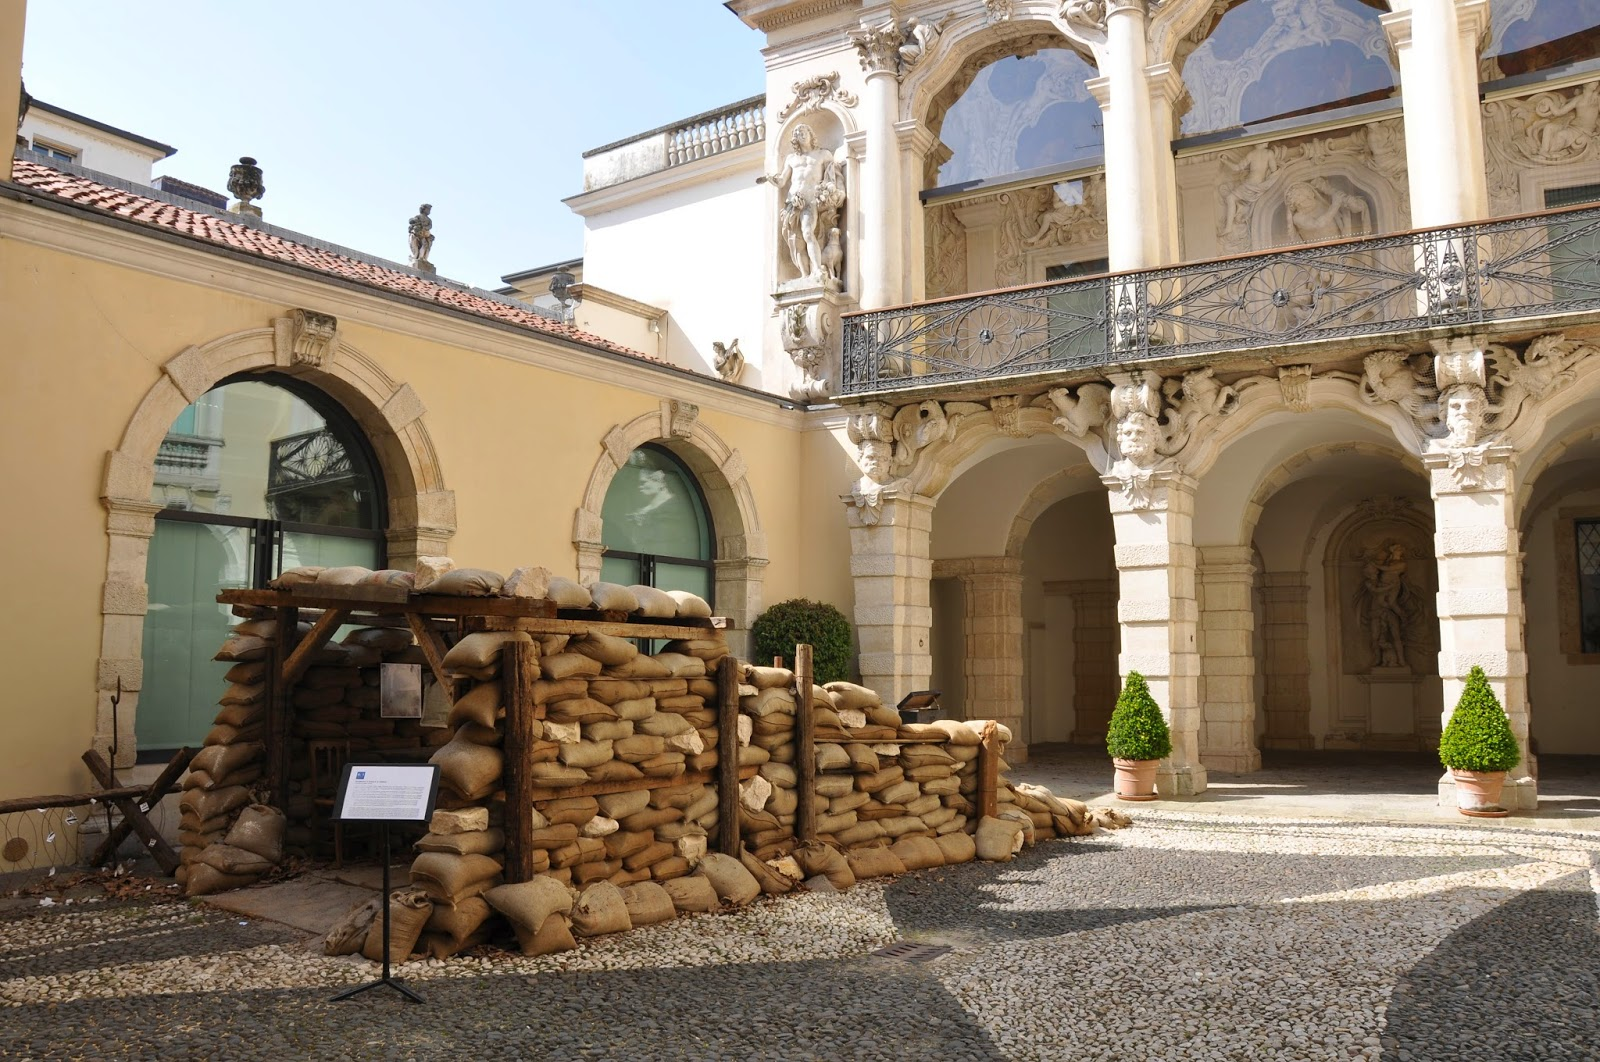 A trench in the patio of Gallerie D'Italia in Palazzo Leoni Montanari, Vicenza, Italy